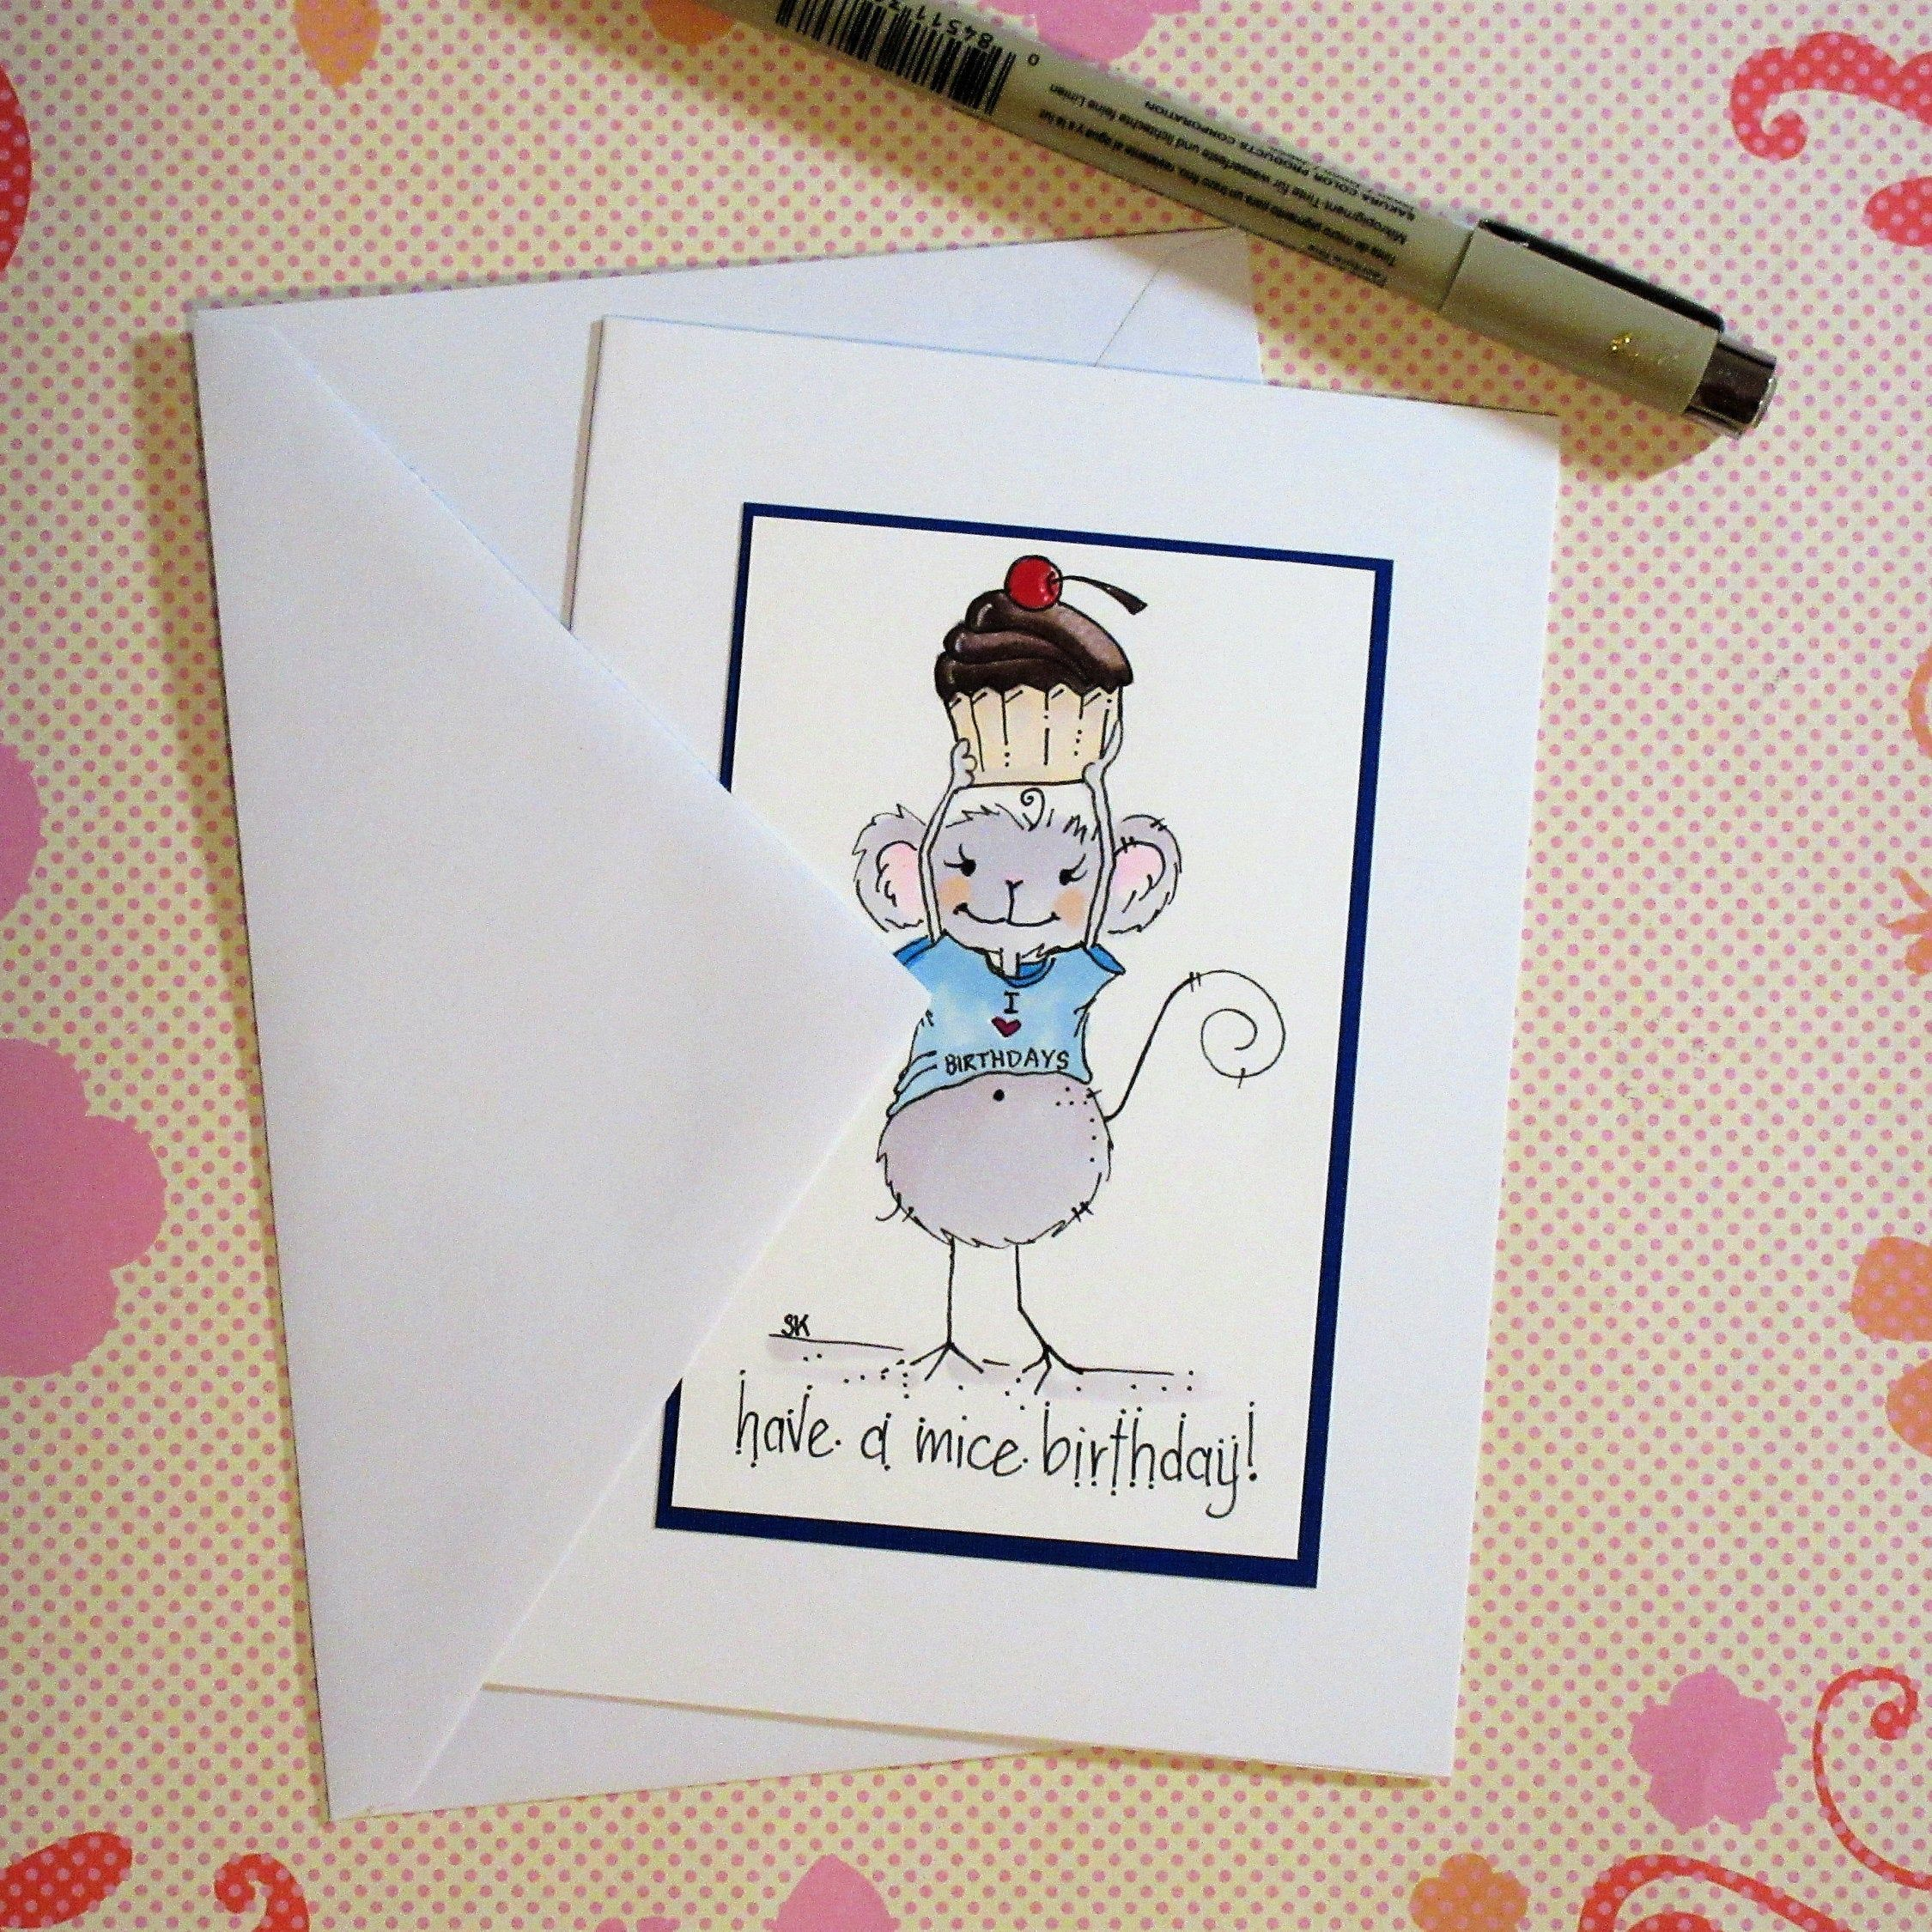 Cute Mouse Birthday Card Cards For Birthdays Cute Greeting Cards